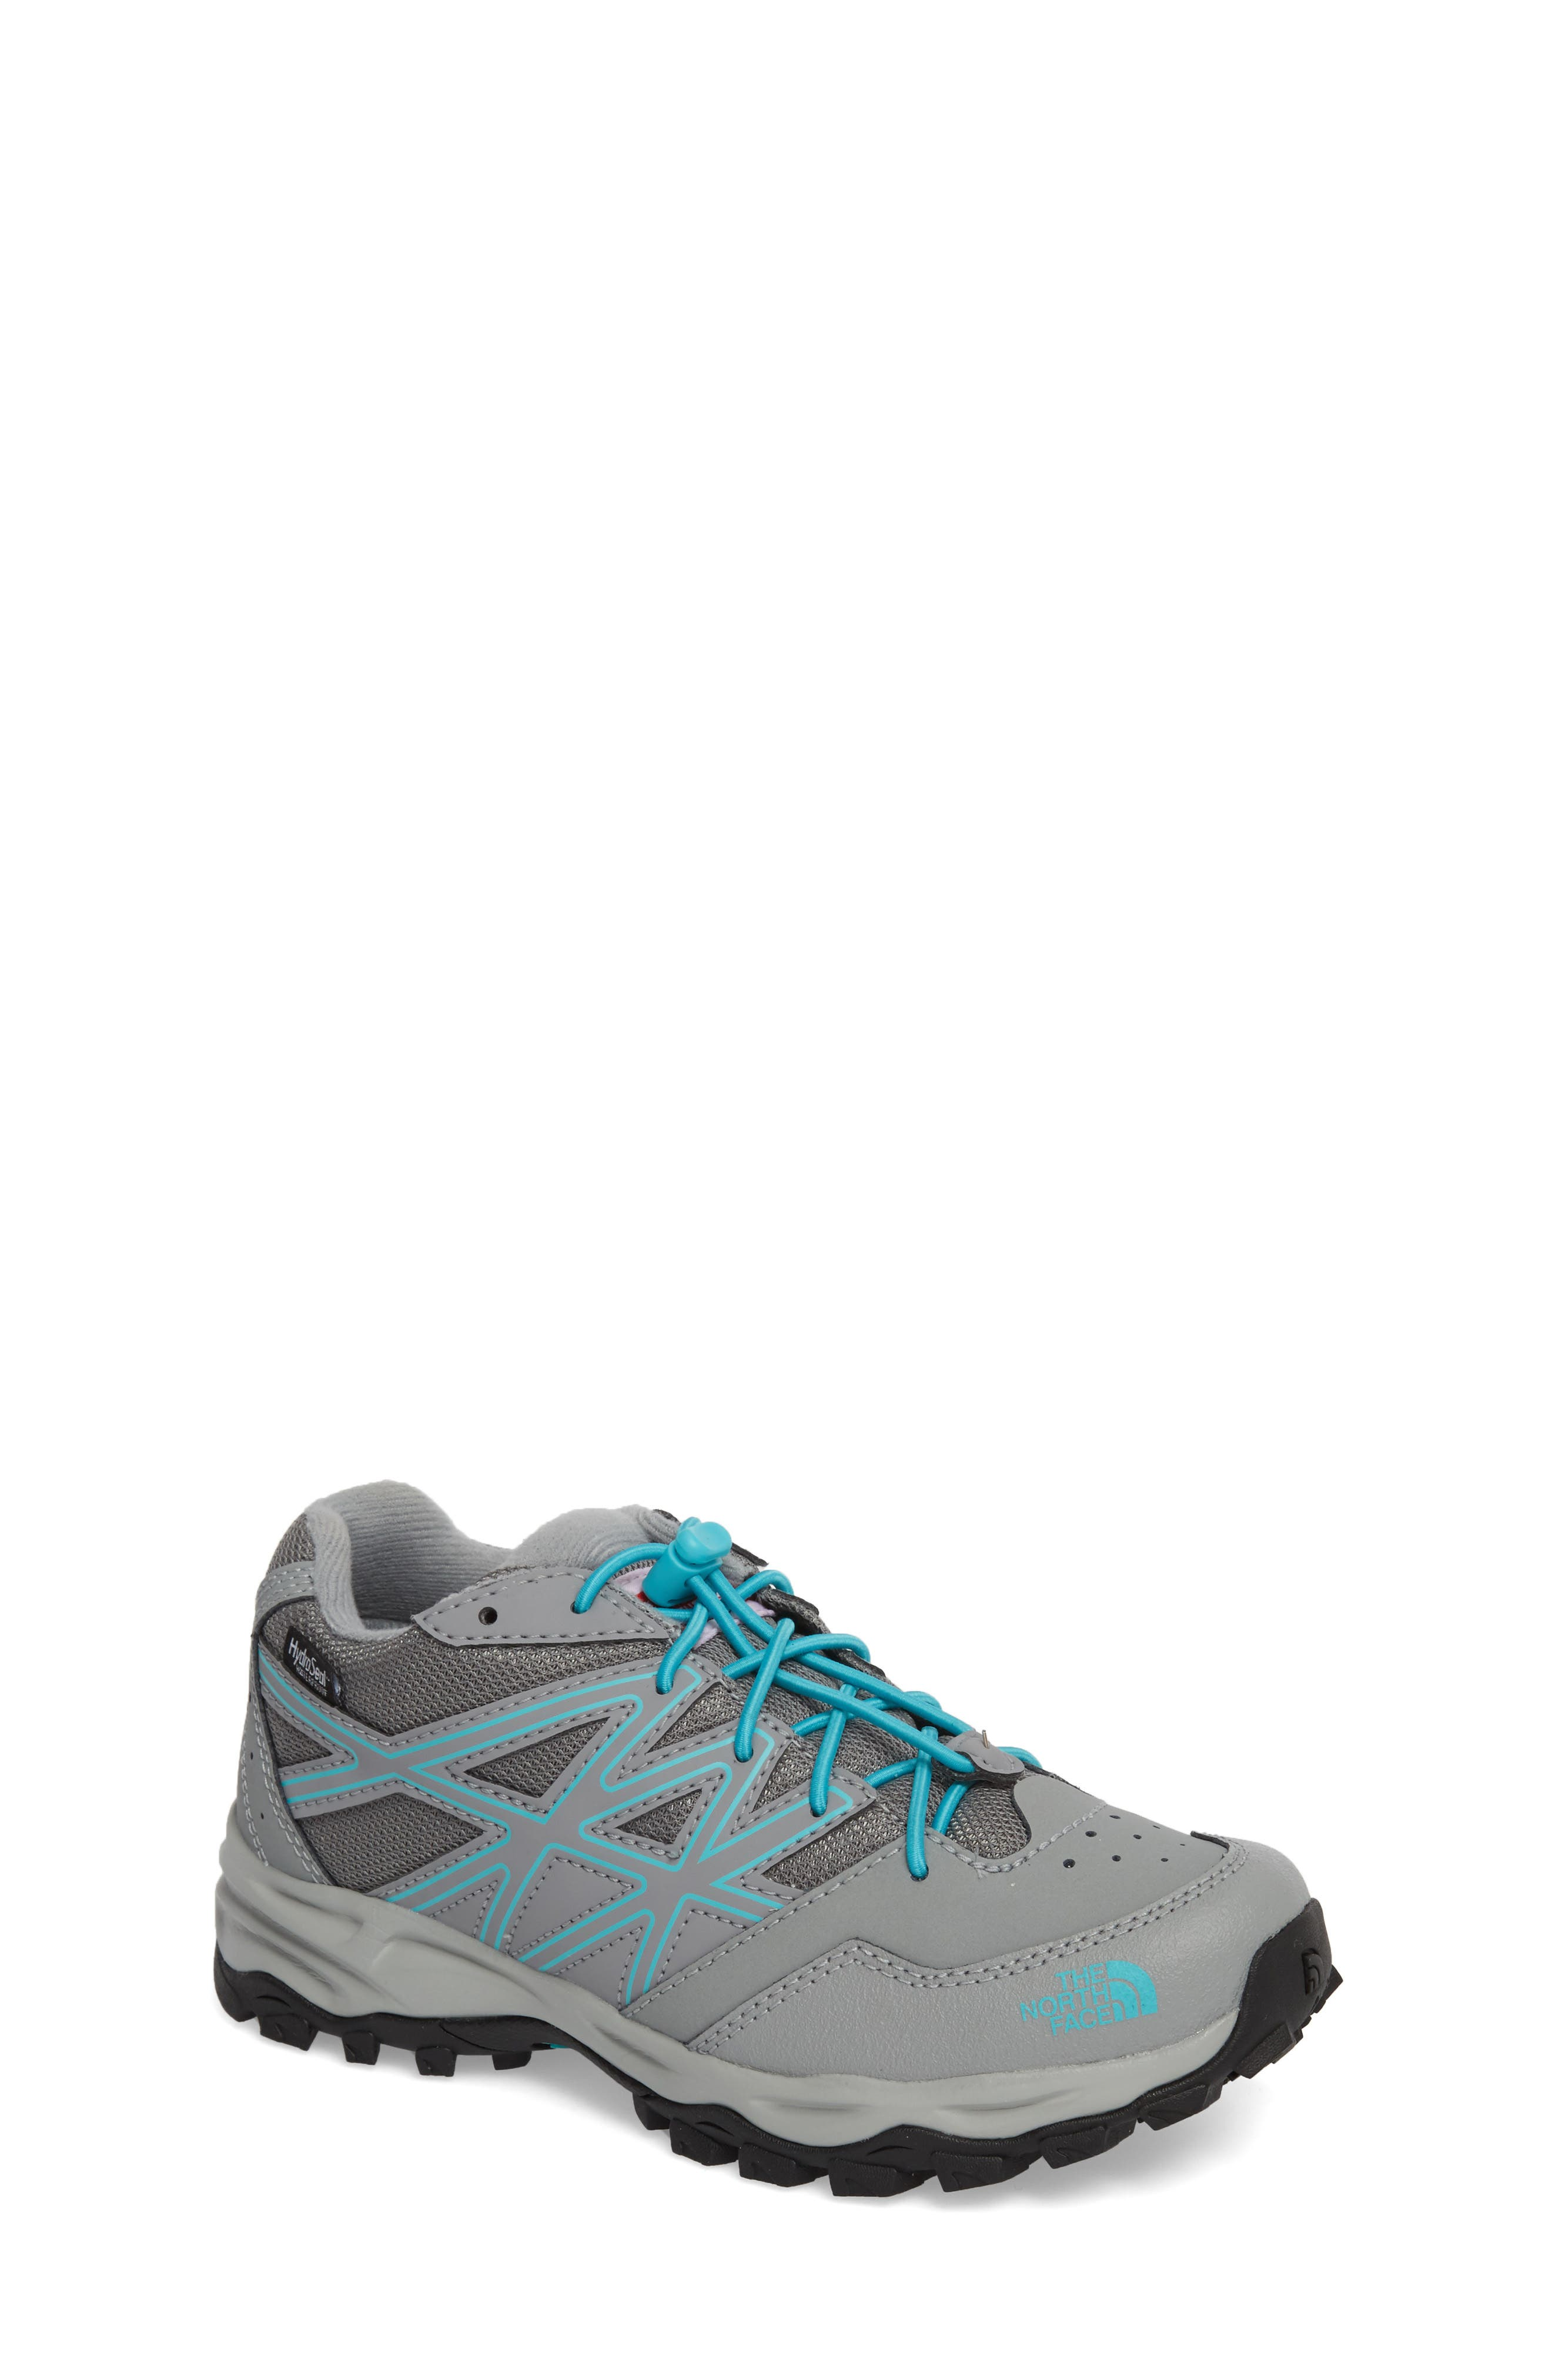 Hedgehog Hiker Boot,                         Main,                         color, Griffin Grey/ Blue Curacao